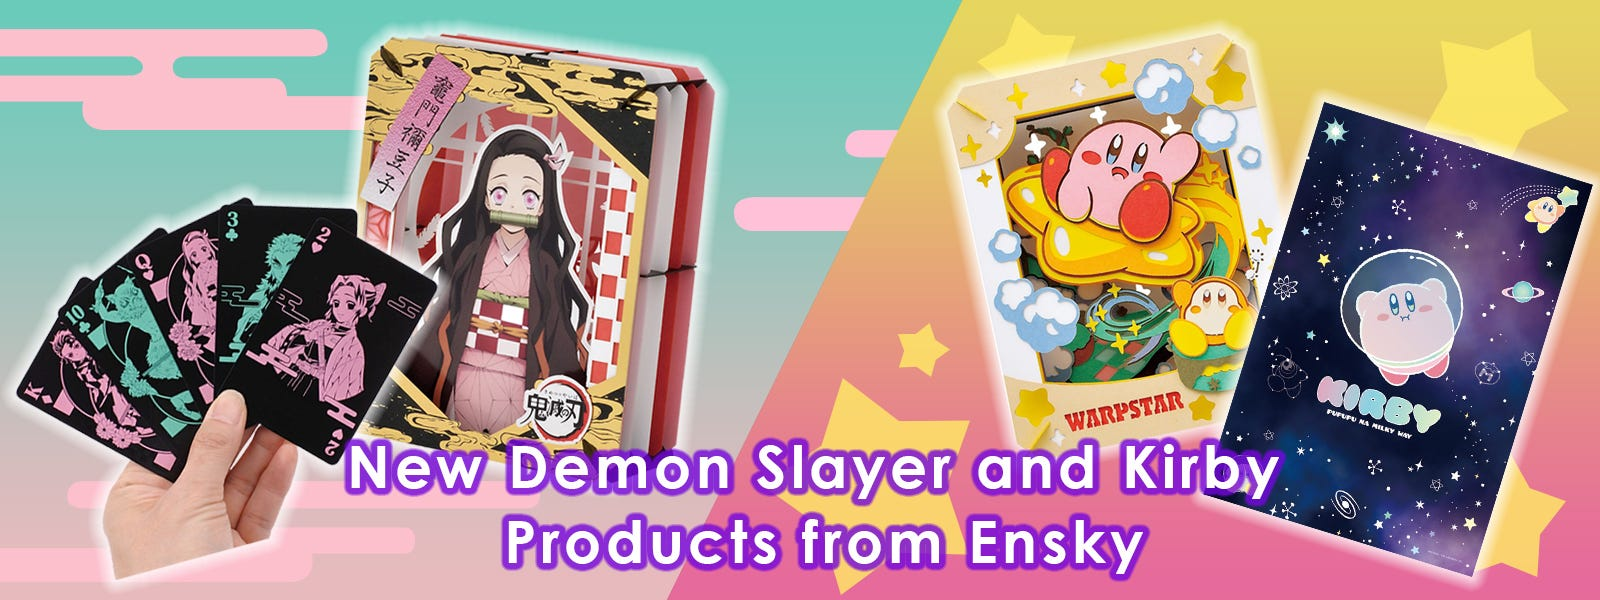 New Demon Slayer and Kirby Products from Ensky